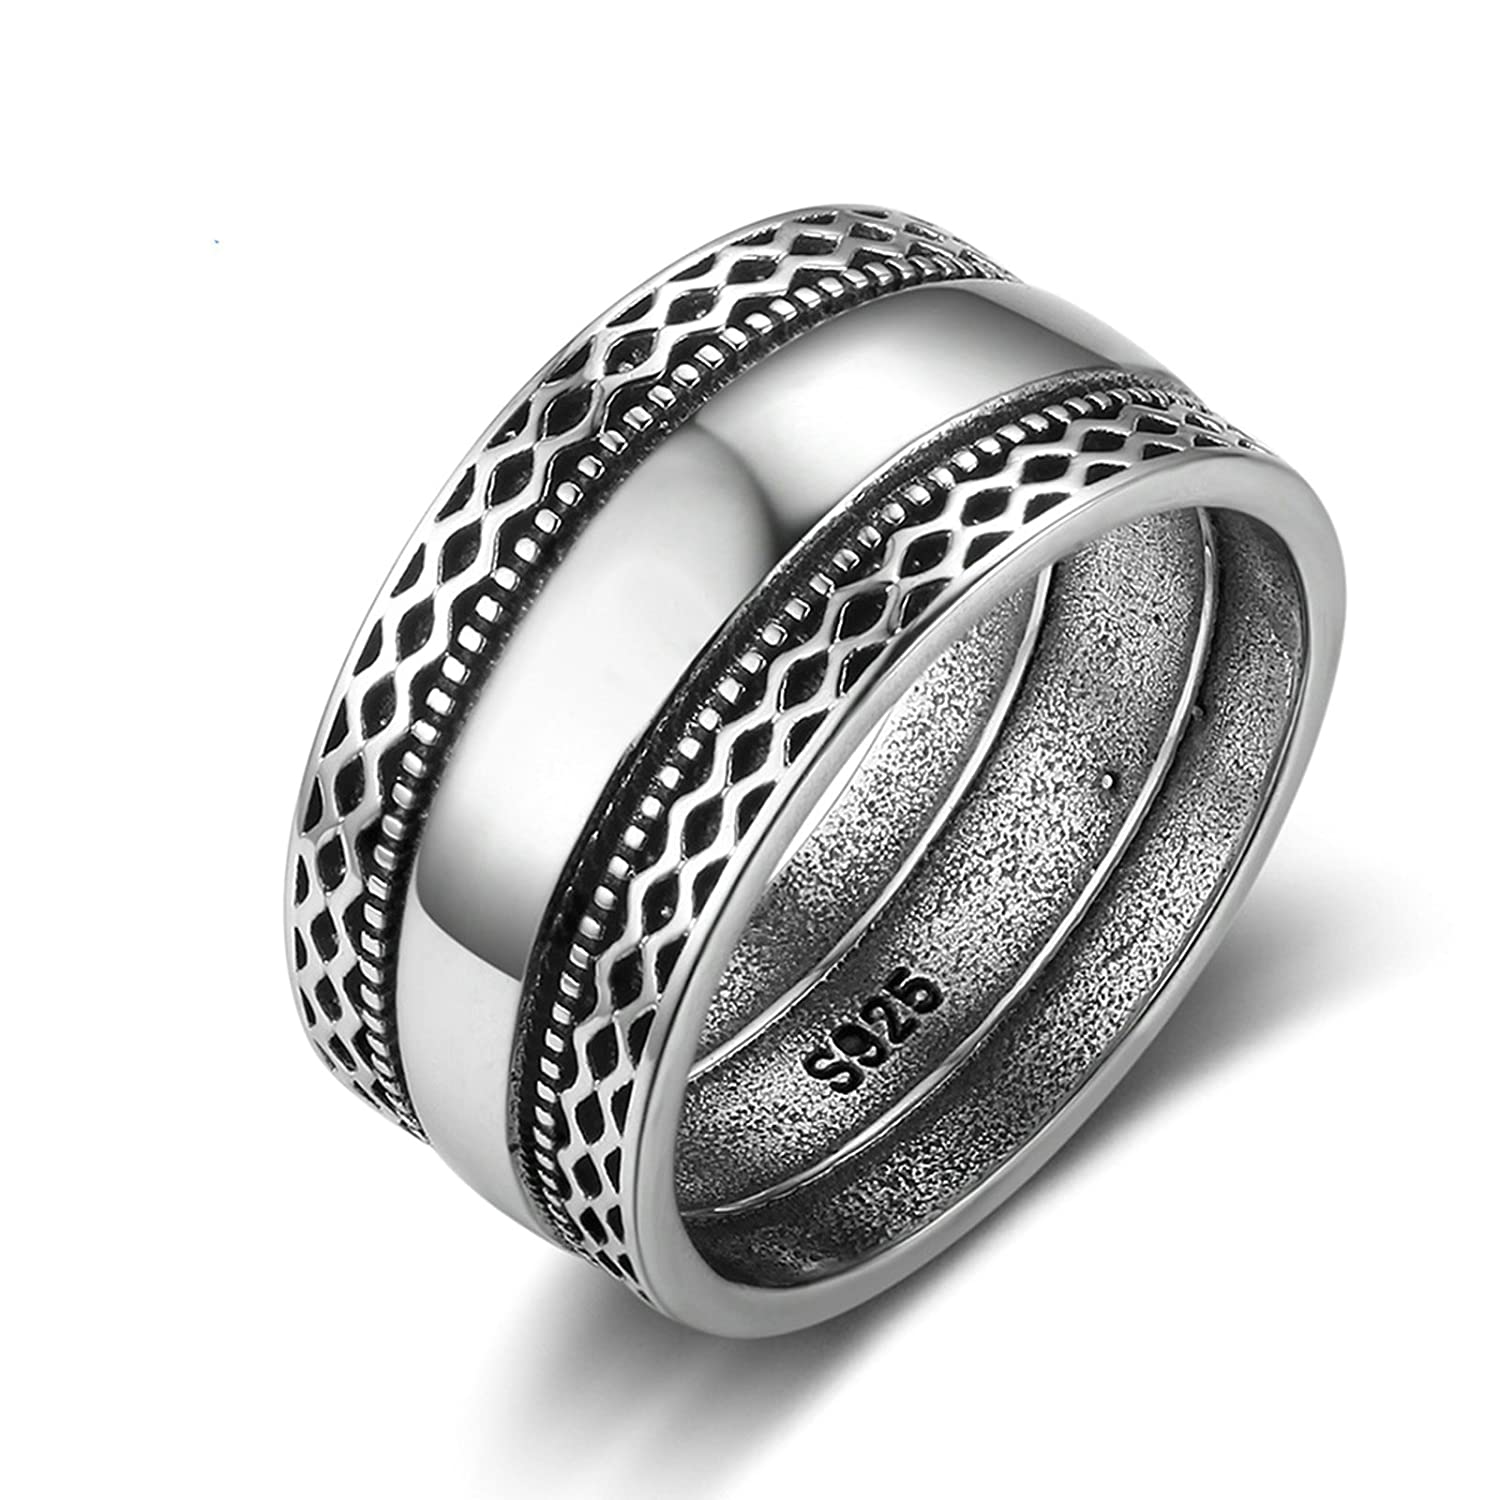 Gnzoe S925 Sterling Silver Wedding Ring for Women Polished